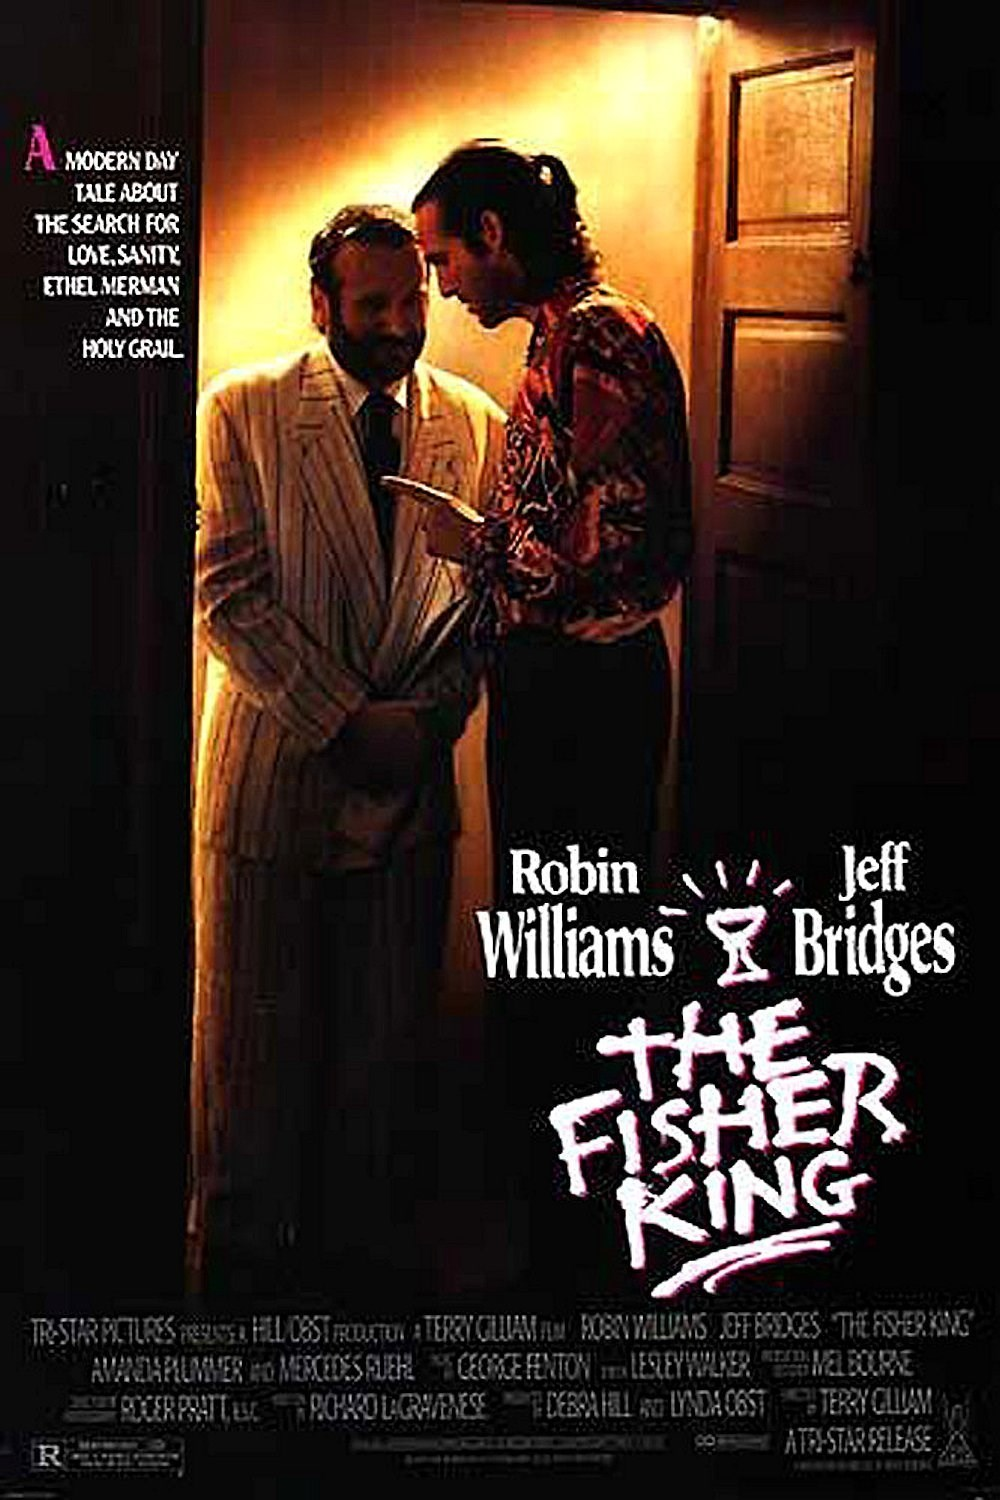 the fisher king The fisher king is one of those very special films we're unable to forget or even  describe objectively it's a dreamlike, magical episode cut out of the lives of.